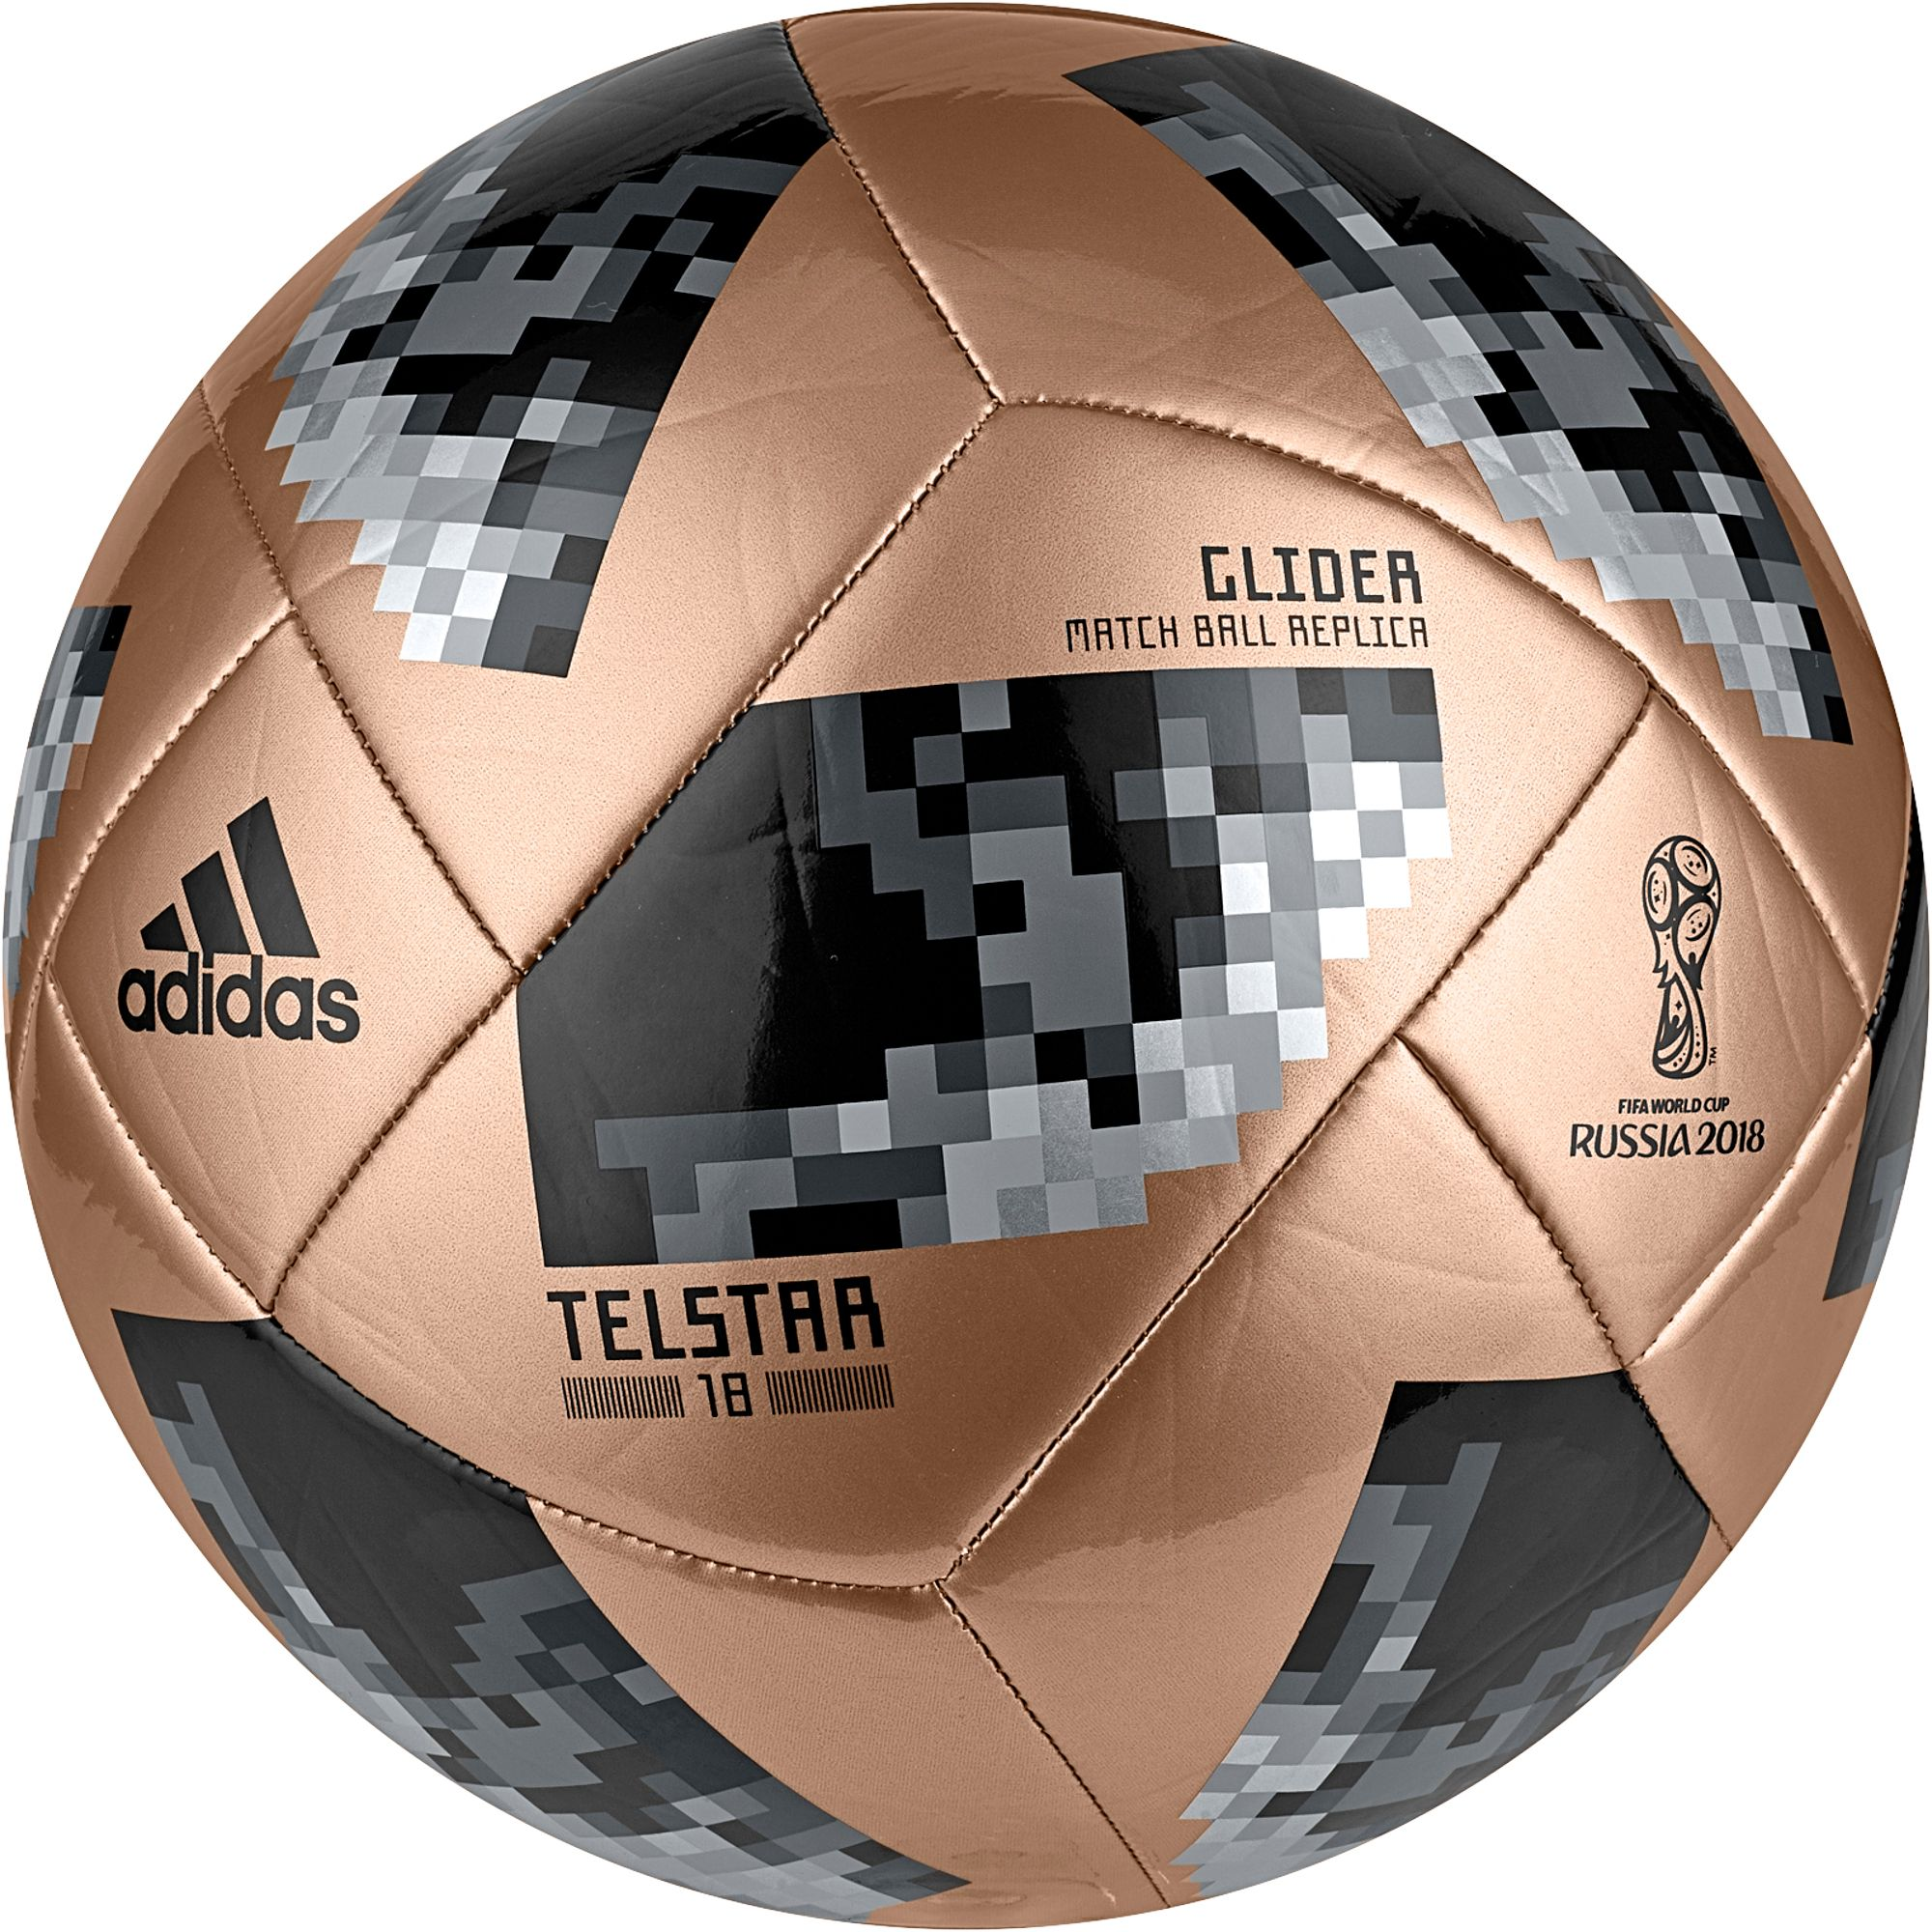 Best Football Ball World Cup 2018 - 17ADIUWC18GPGLDRGSCB_Gold_Black_is  Collection_314290 .com/is/image/dkscdn/17ADIUWC18GPGLDRGSCB_Gold_Black_is